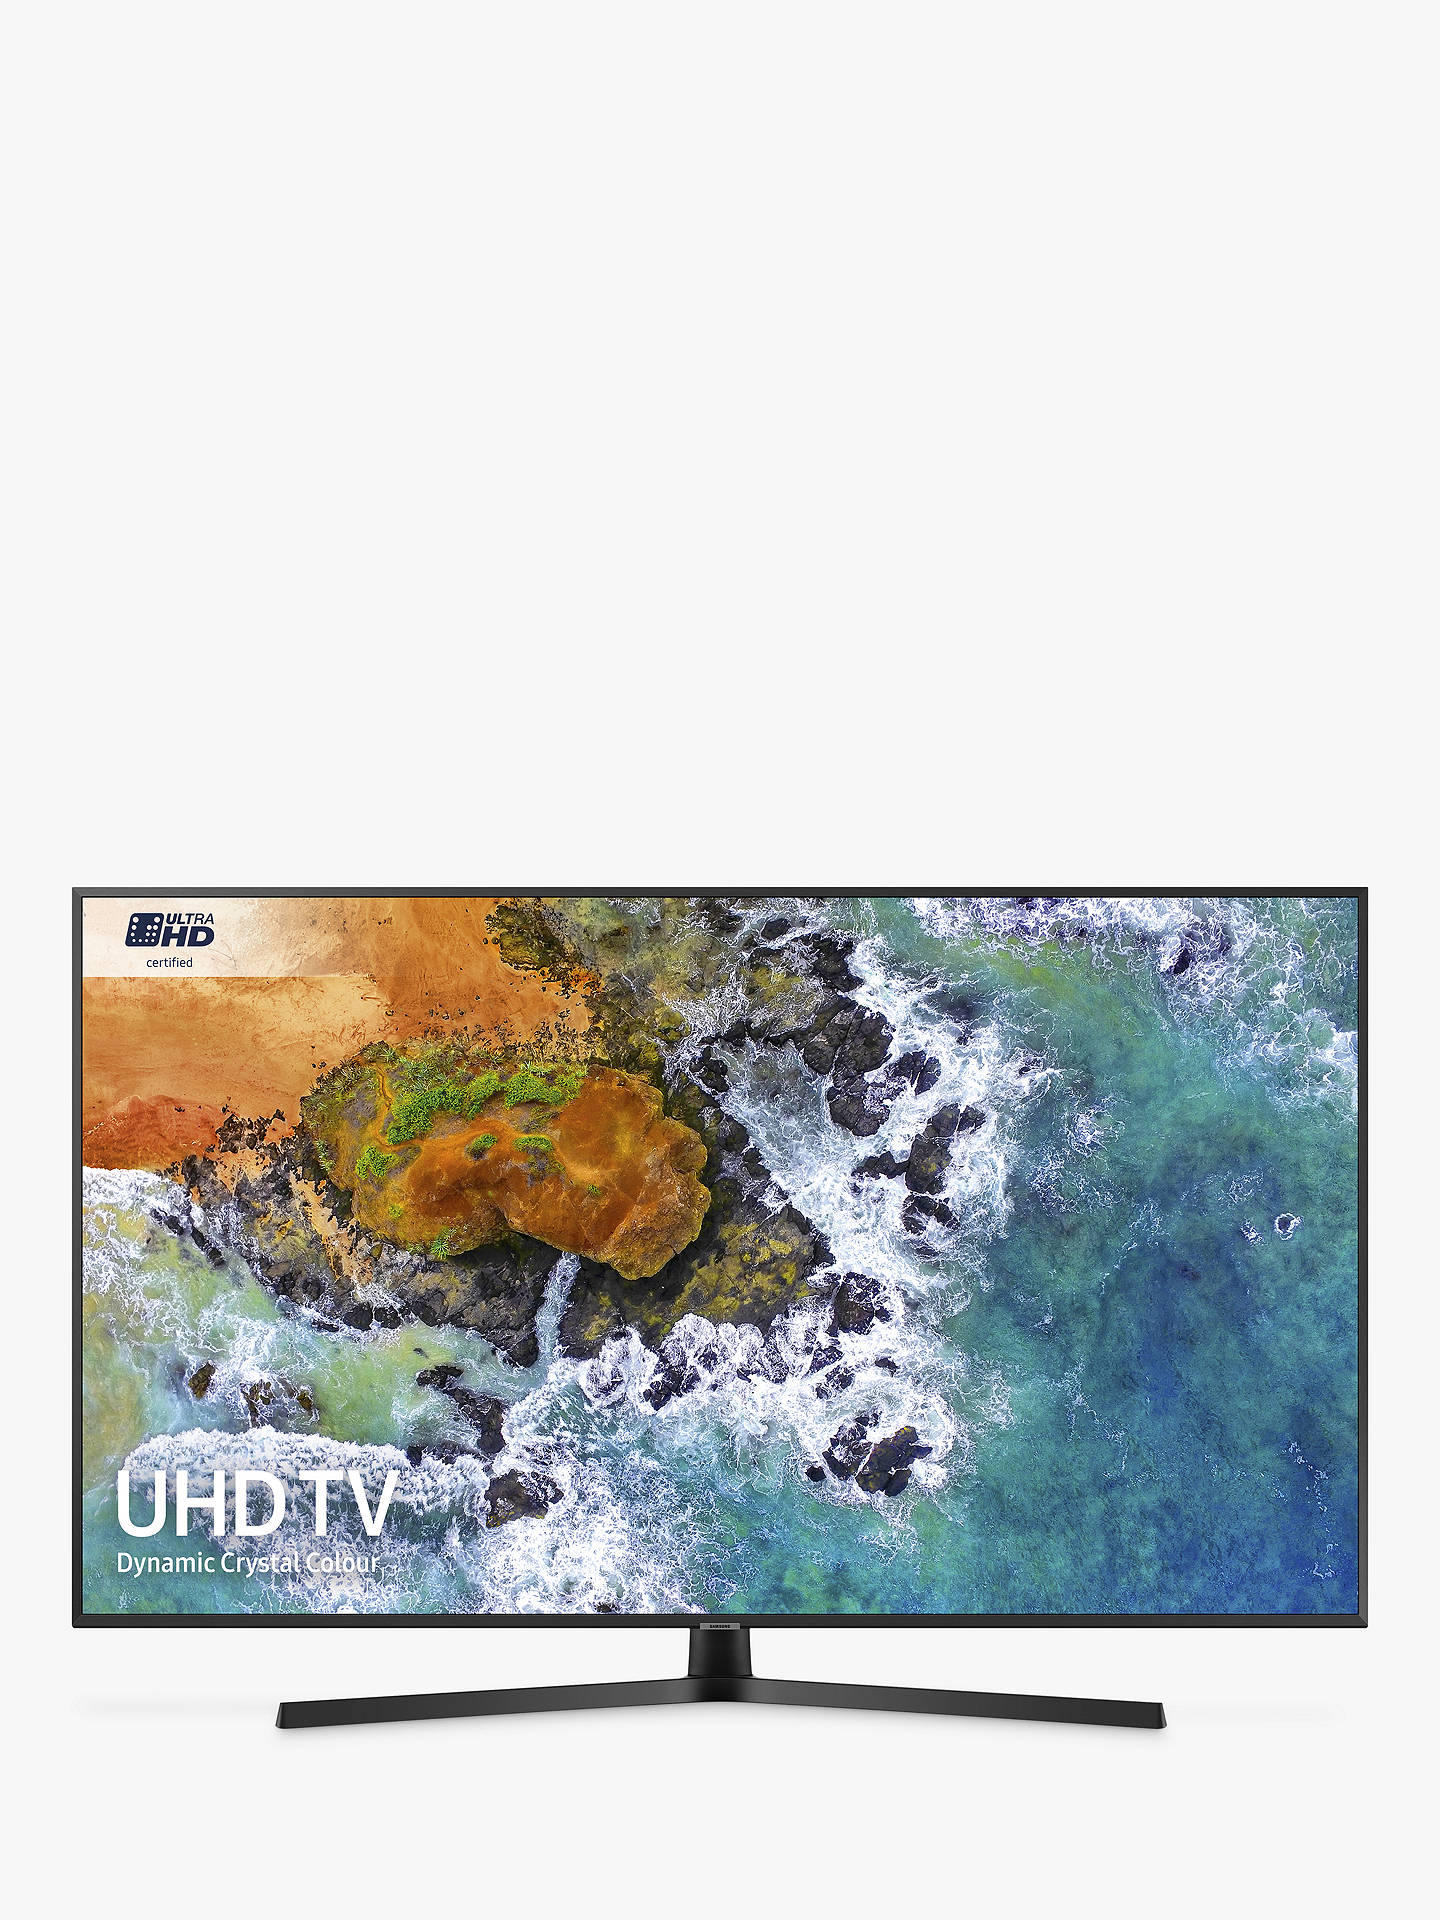 BuySamsung UE50NU7400 HDR 4K Ultra HD Smart TV, 50\ Samsung